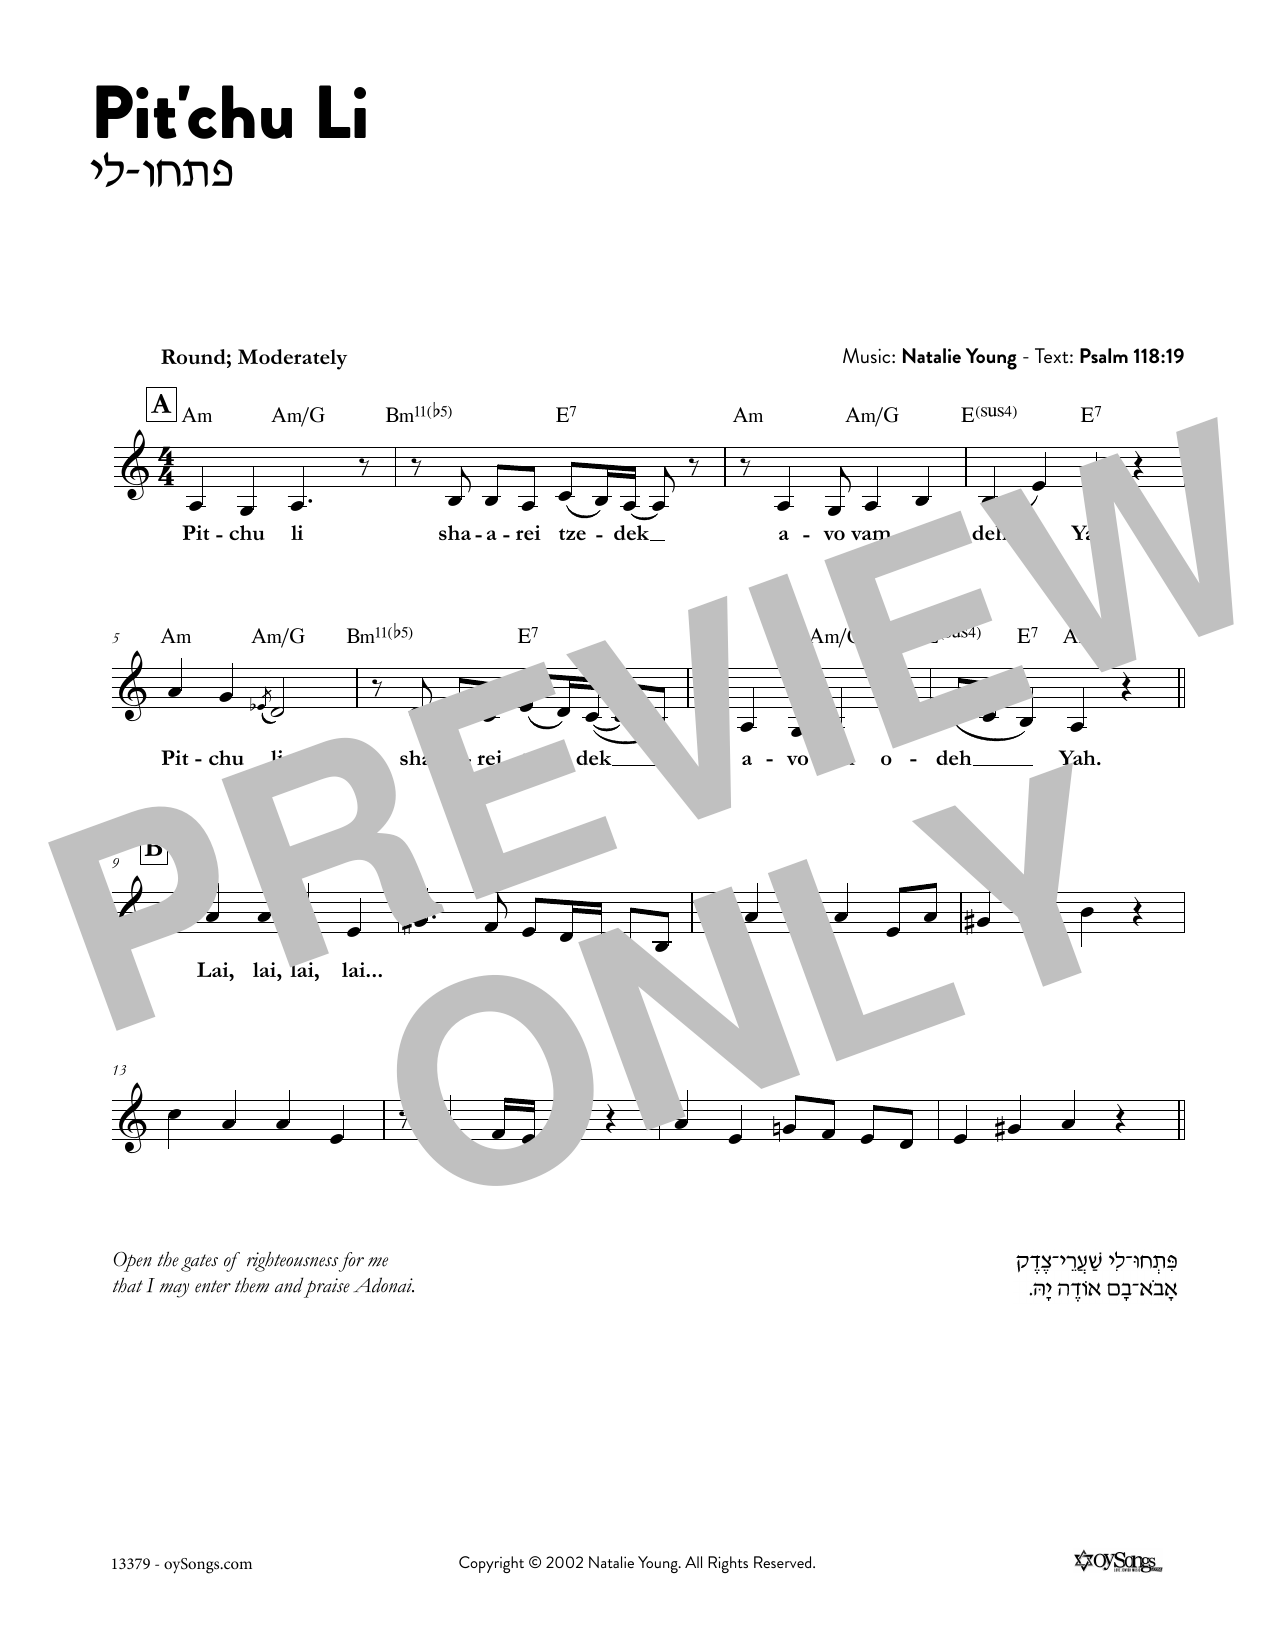 Pitchu Li Sheet Music